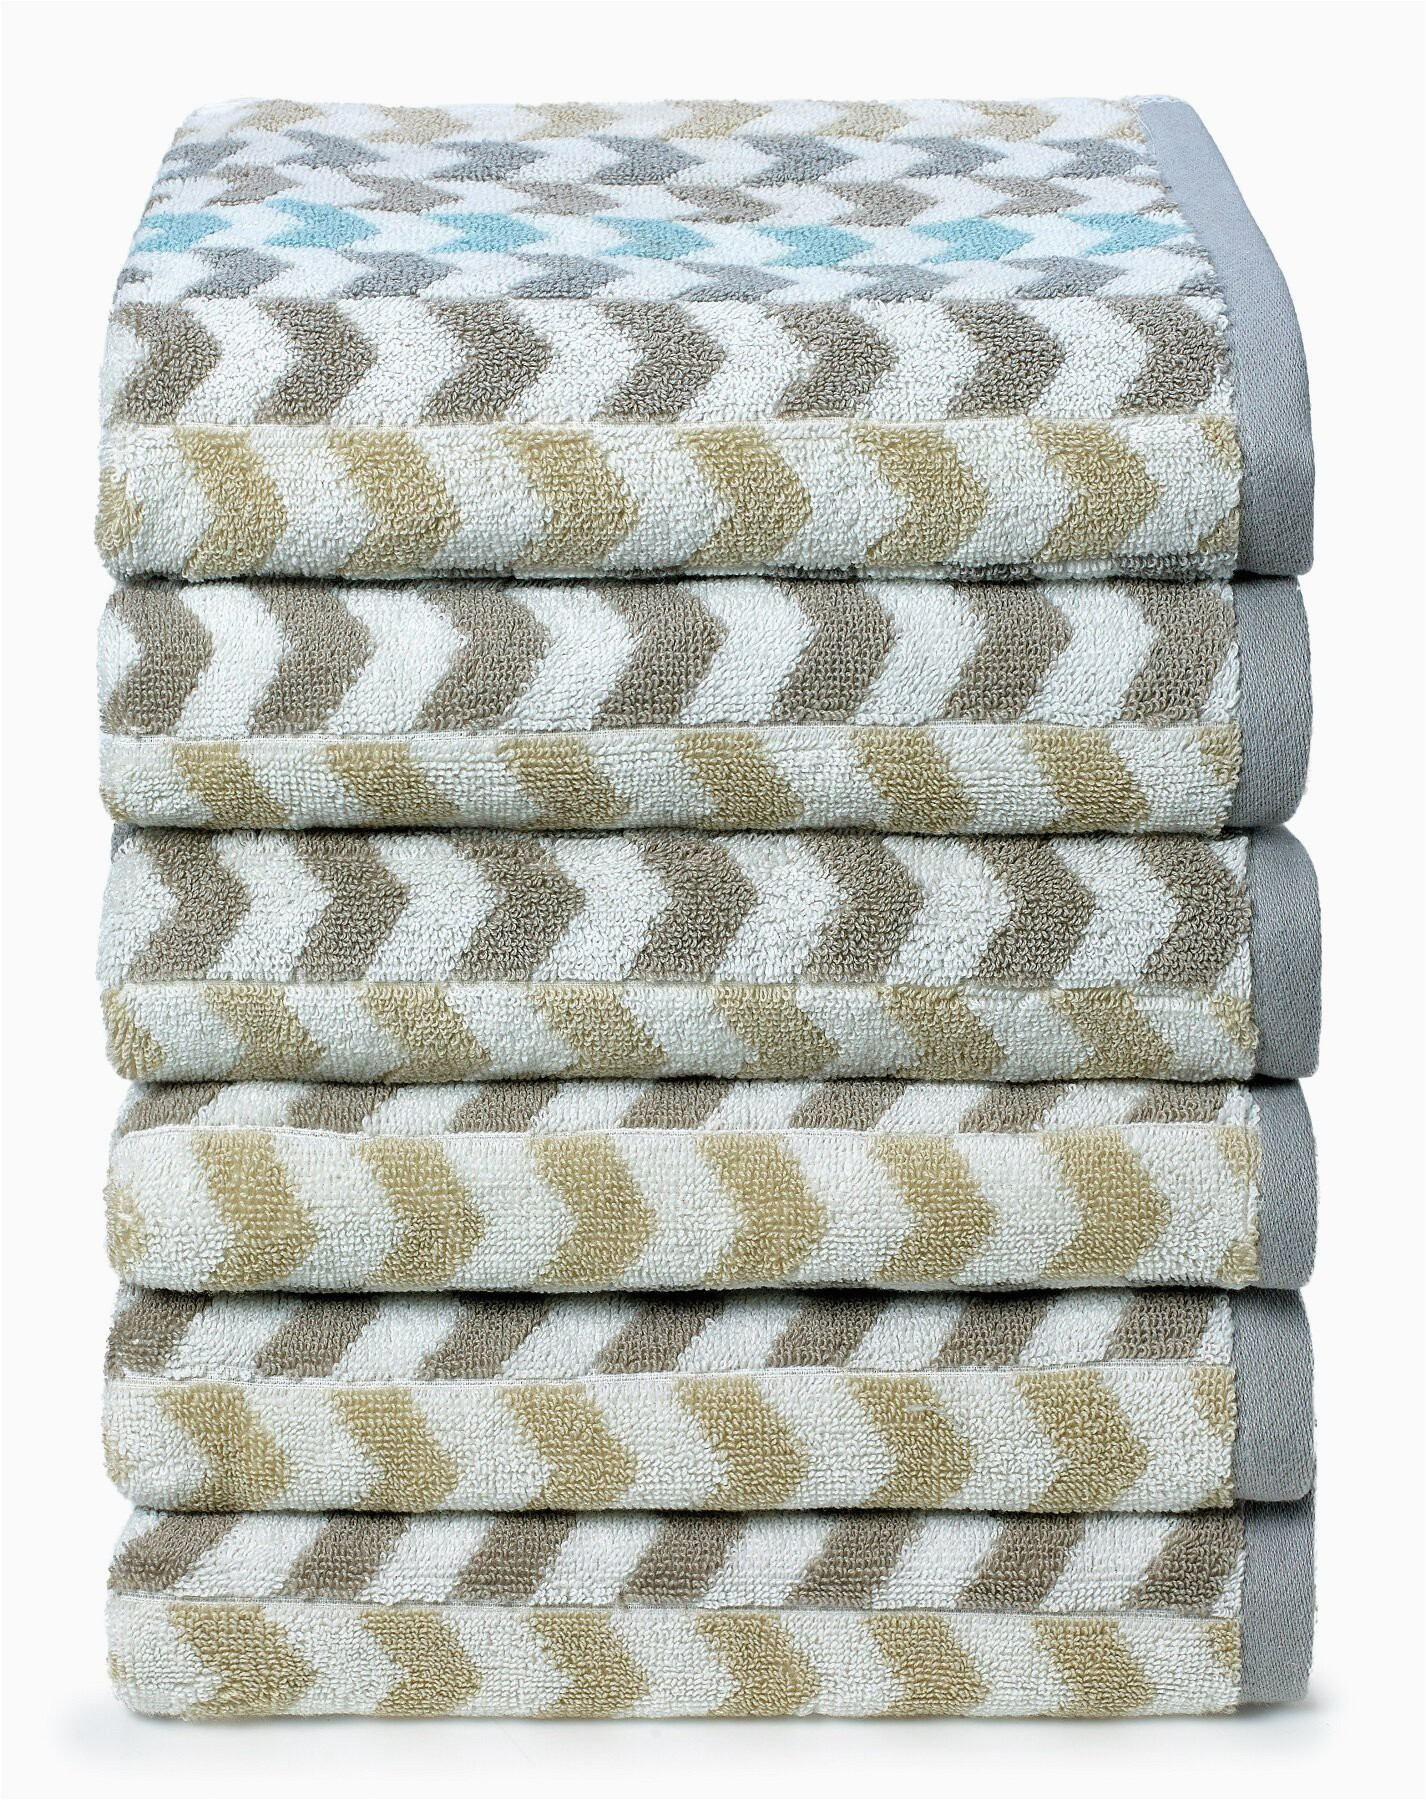 wrought studio cormac majestic terry cloth hand towel wrsd1569 piid=